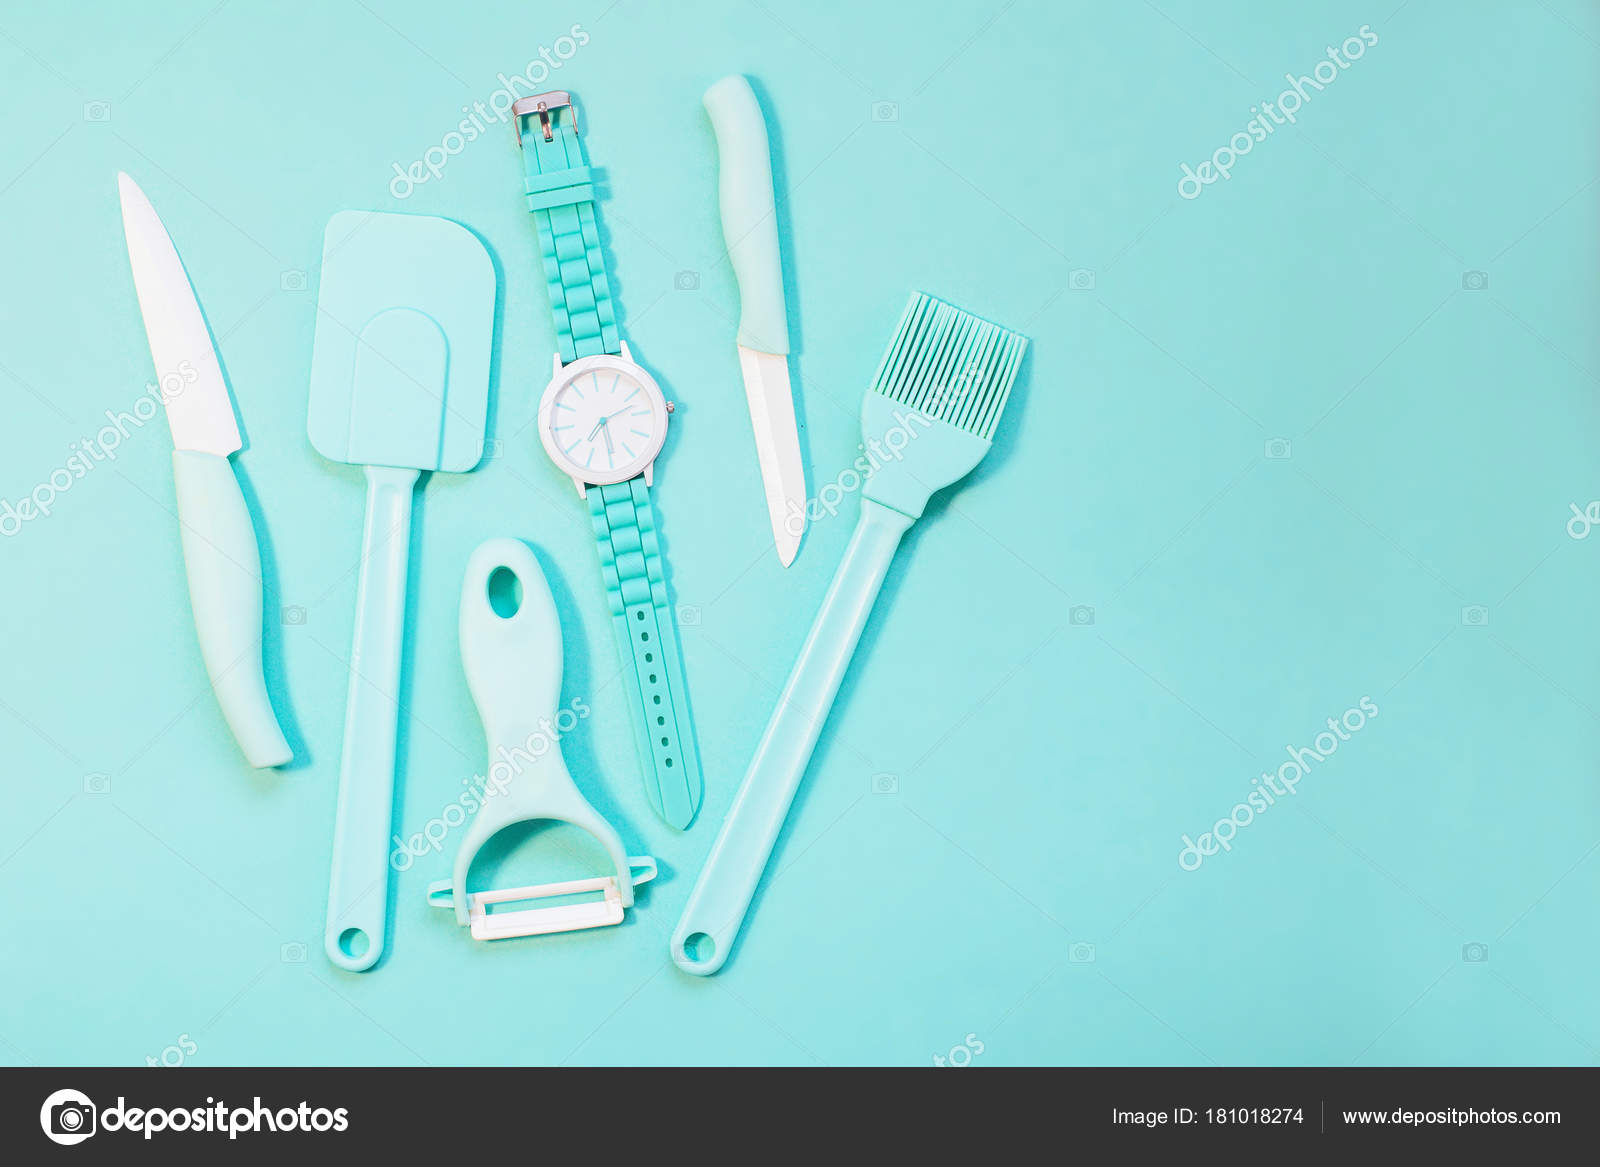 Cooking Tools And Kitchen Utensil On Color Background Photo By Photokool Ukr Net